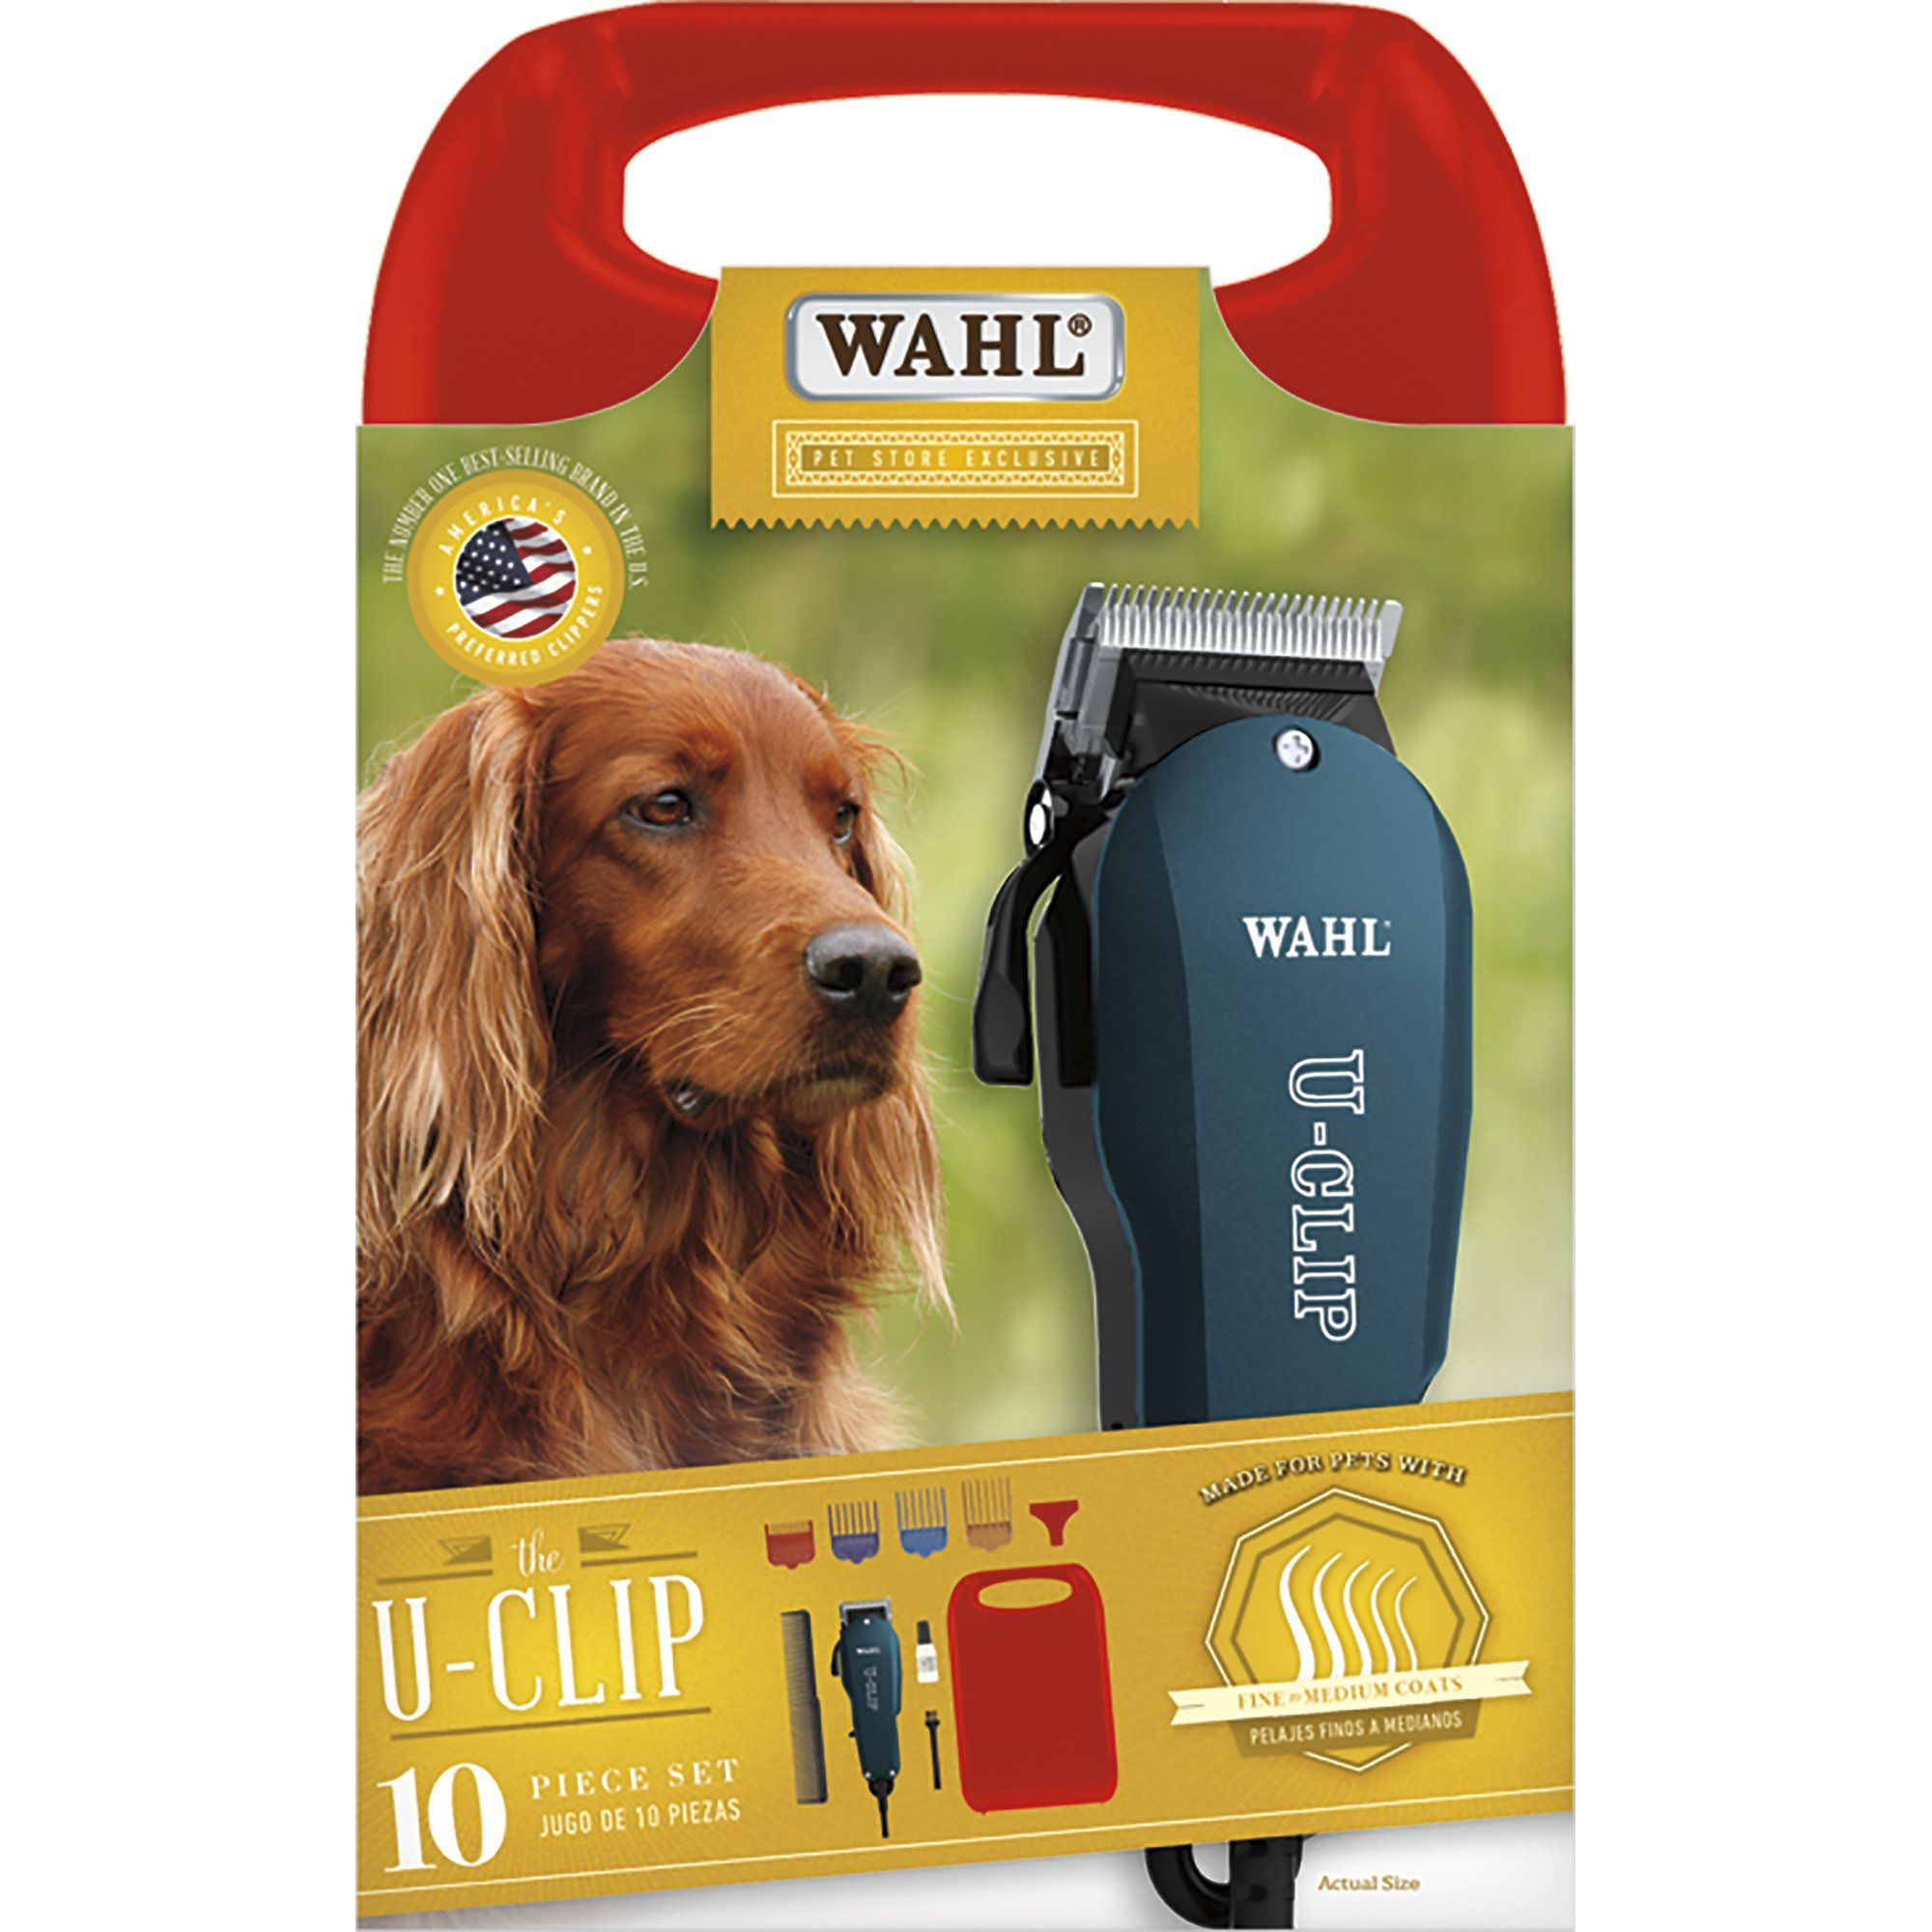 Wahl U Clip Pet Clipper Kit Petco Hair Clippers Grooming Kit Dog Grooming Supplies